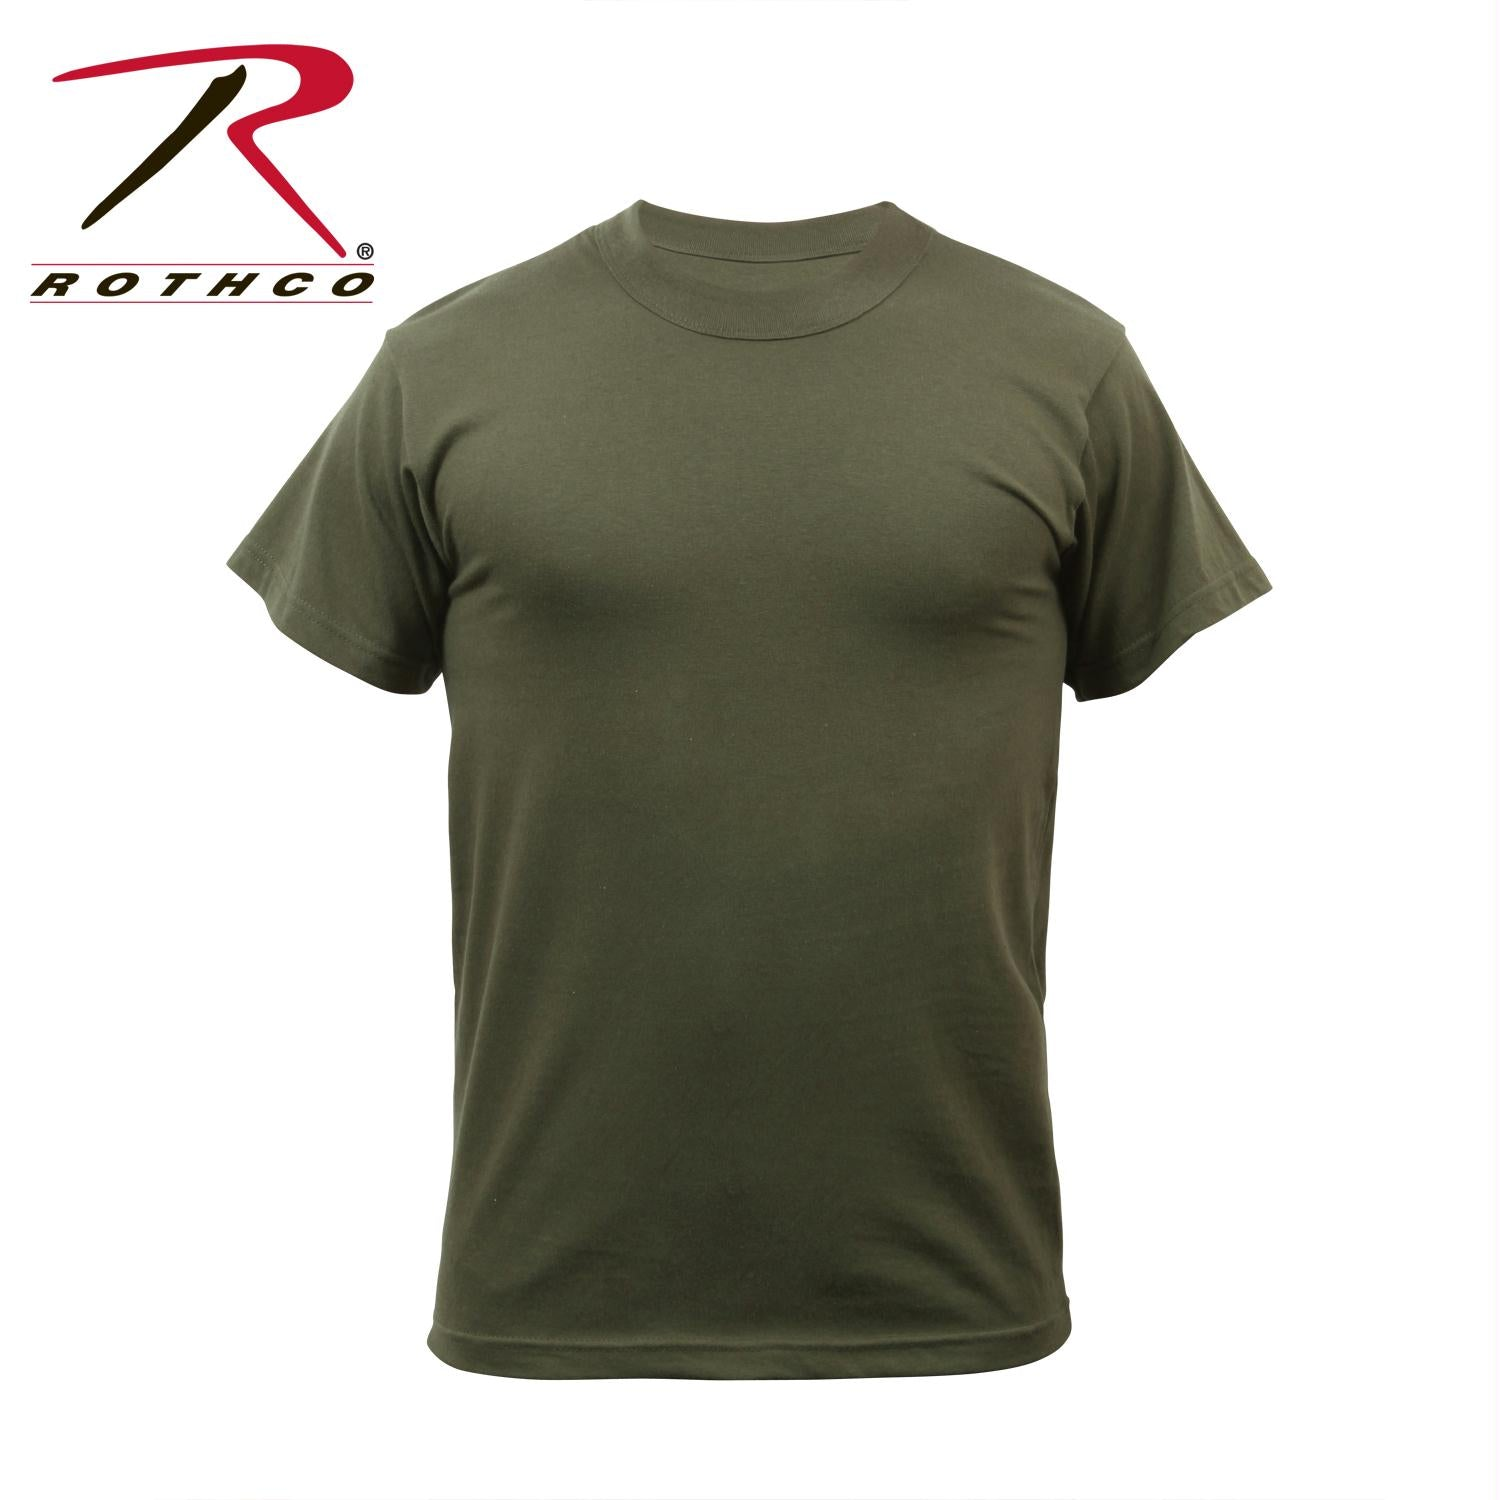 Rothco Solid Color Poly/Cotton Military T-Shirt - Olive Drab / M